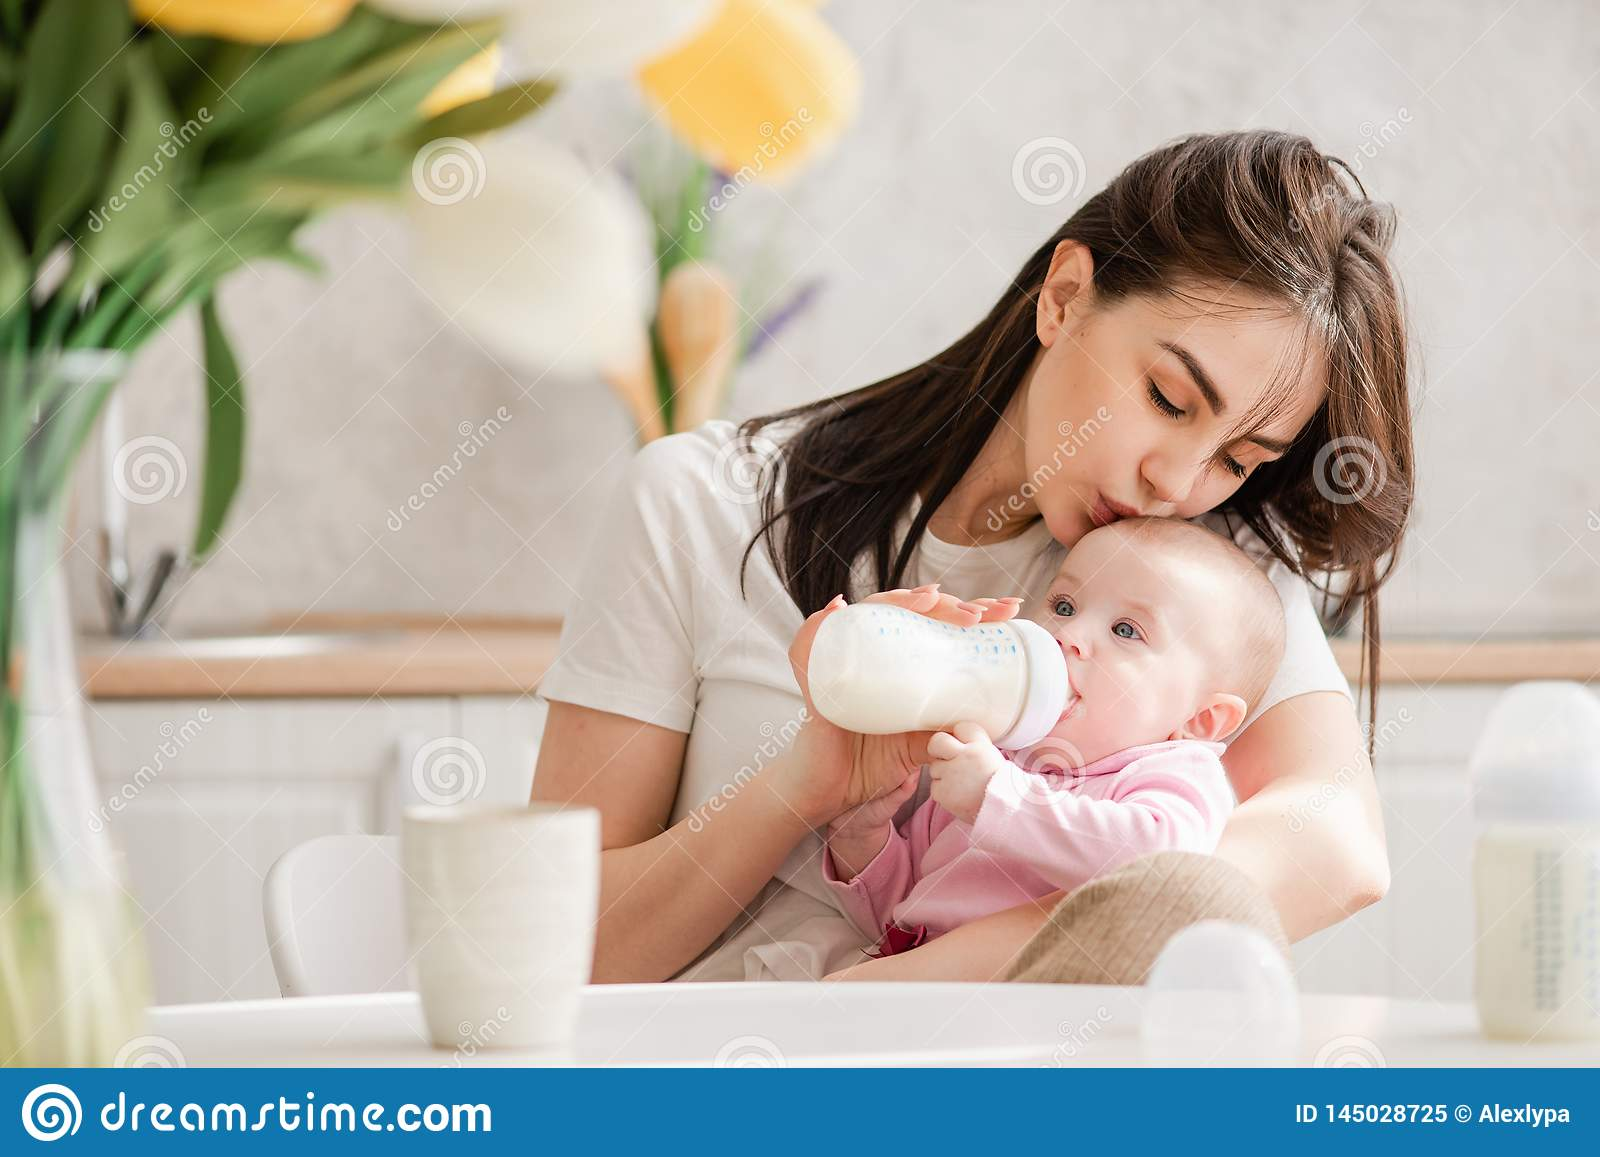 Young woman kiss baby during drinking milk